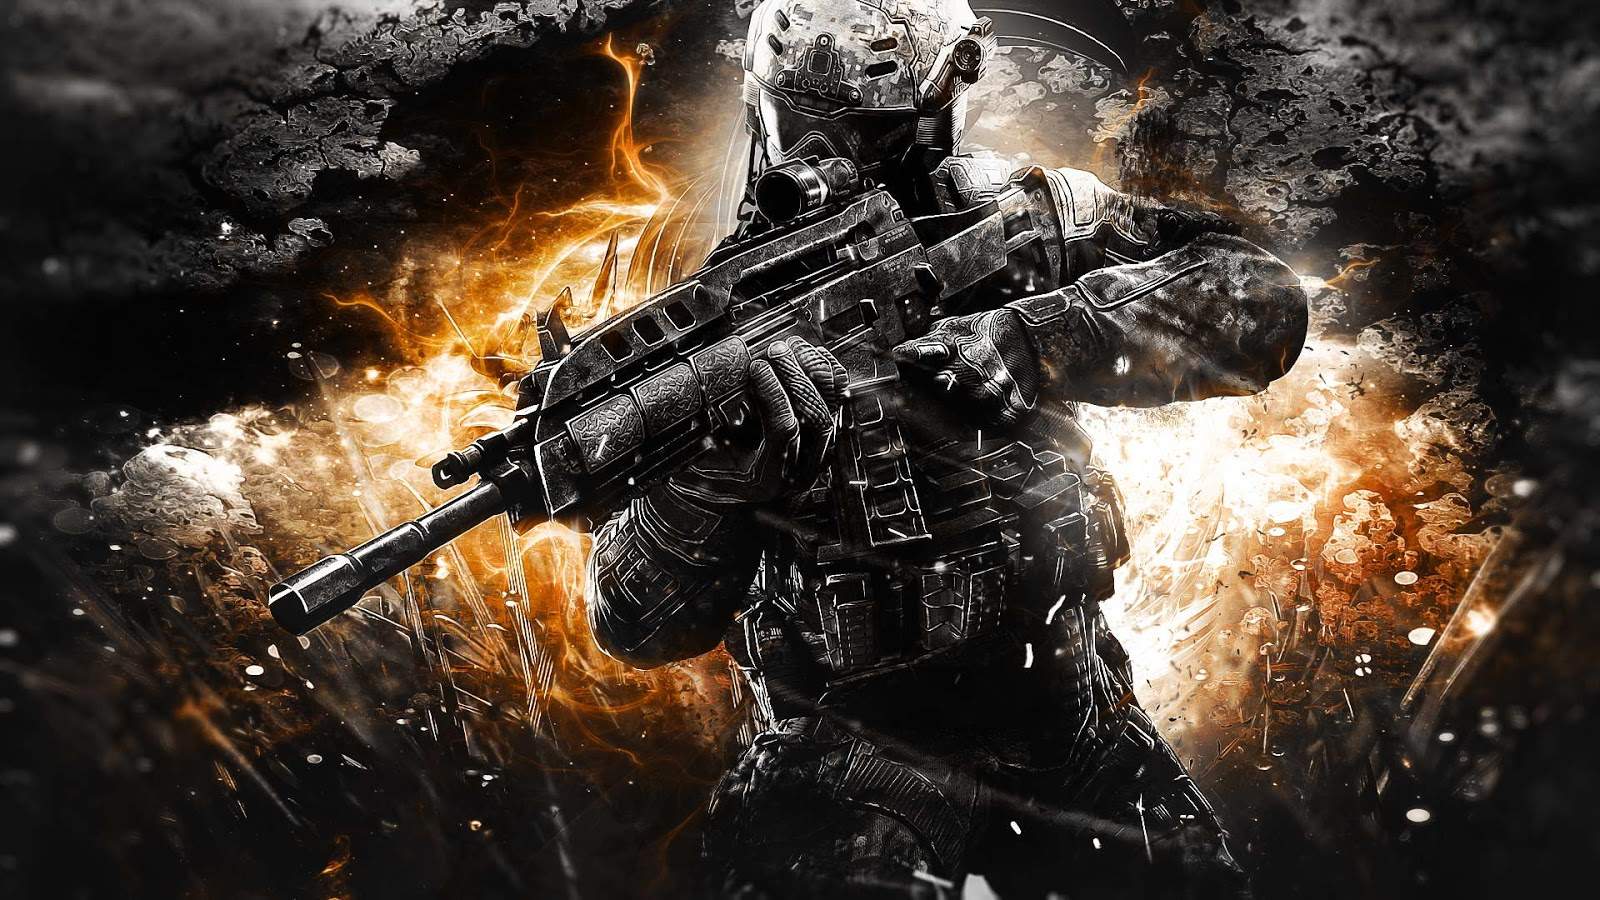 Cod Bo2 Zombies Wallpaper Cod black ops 2 zombies 1600x900